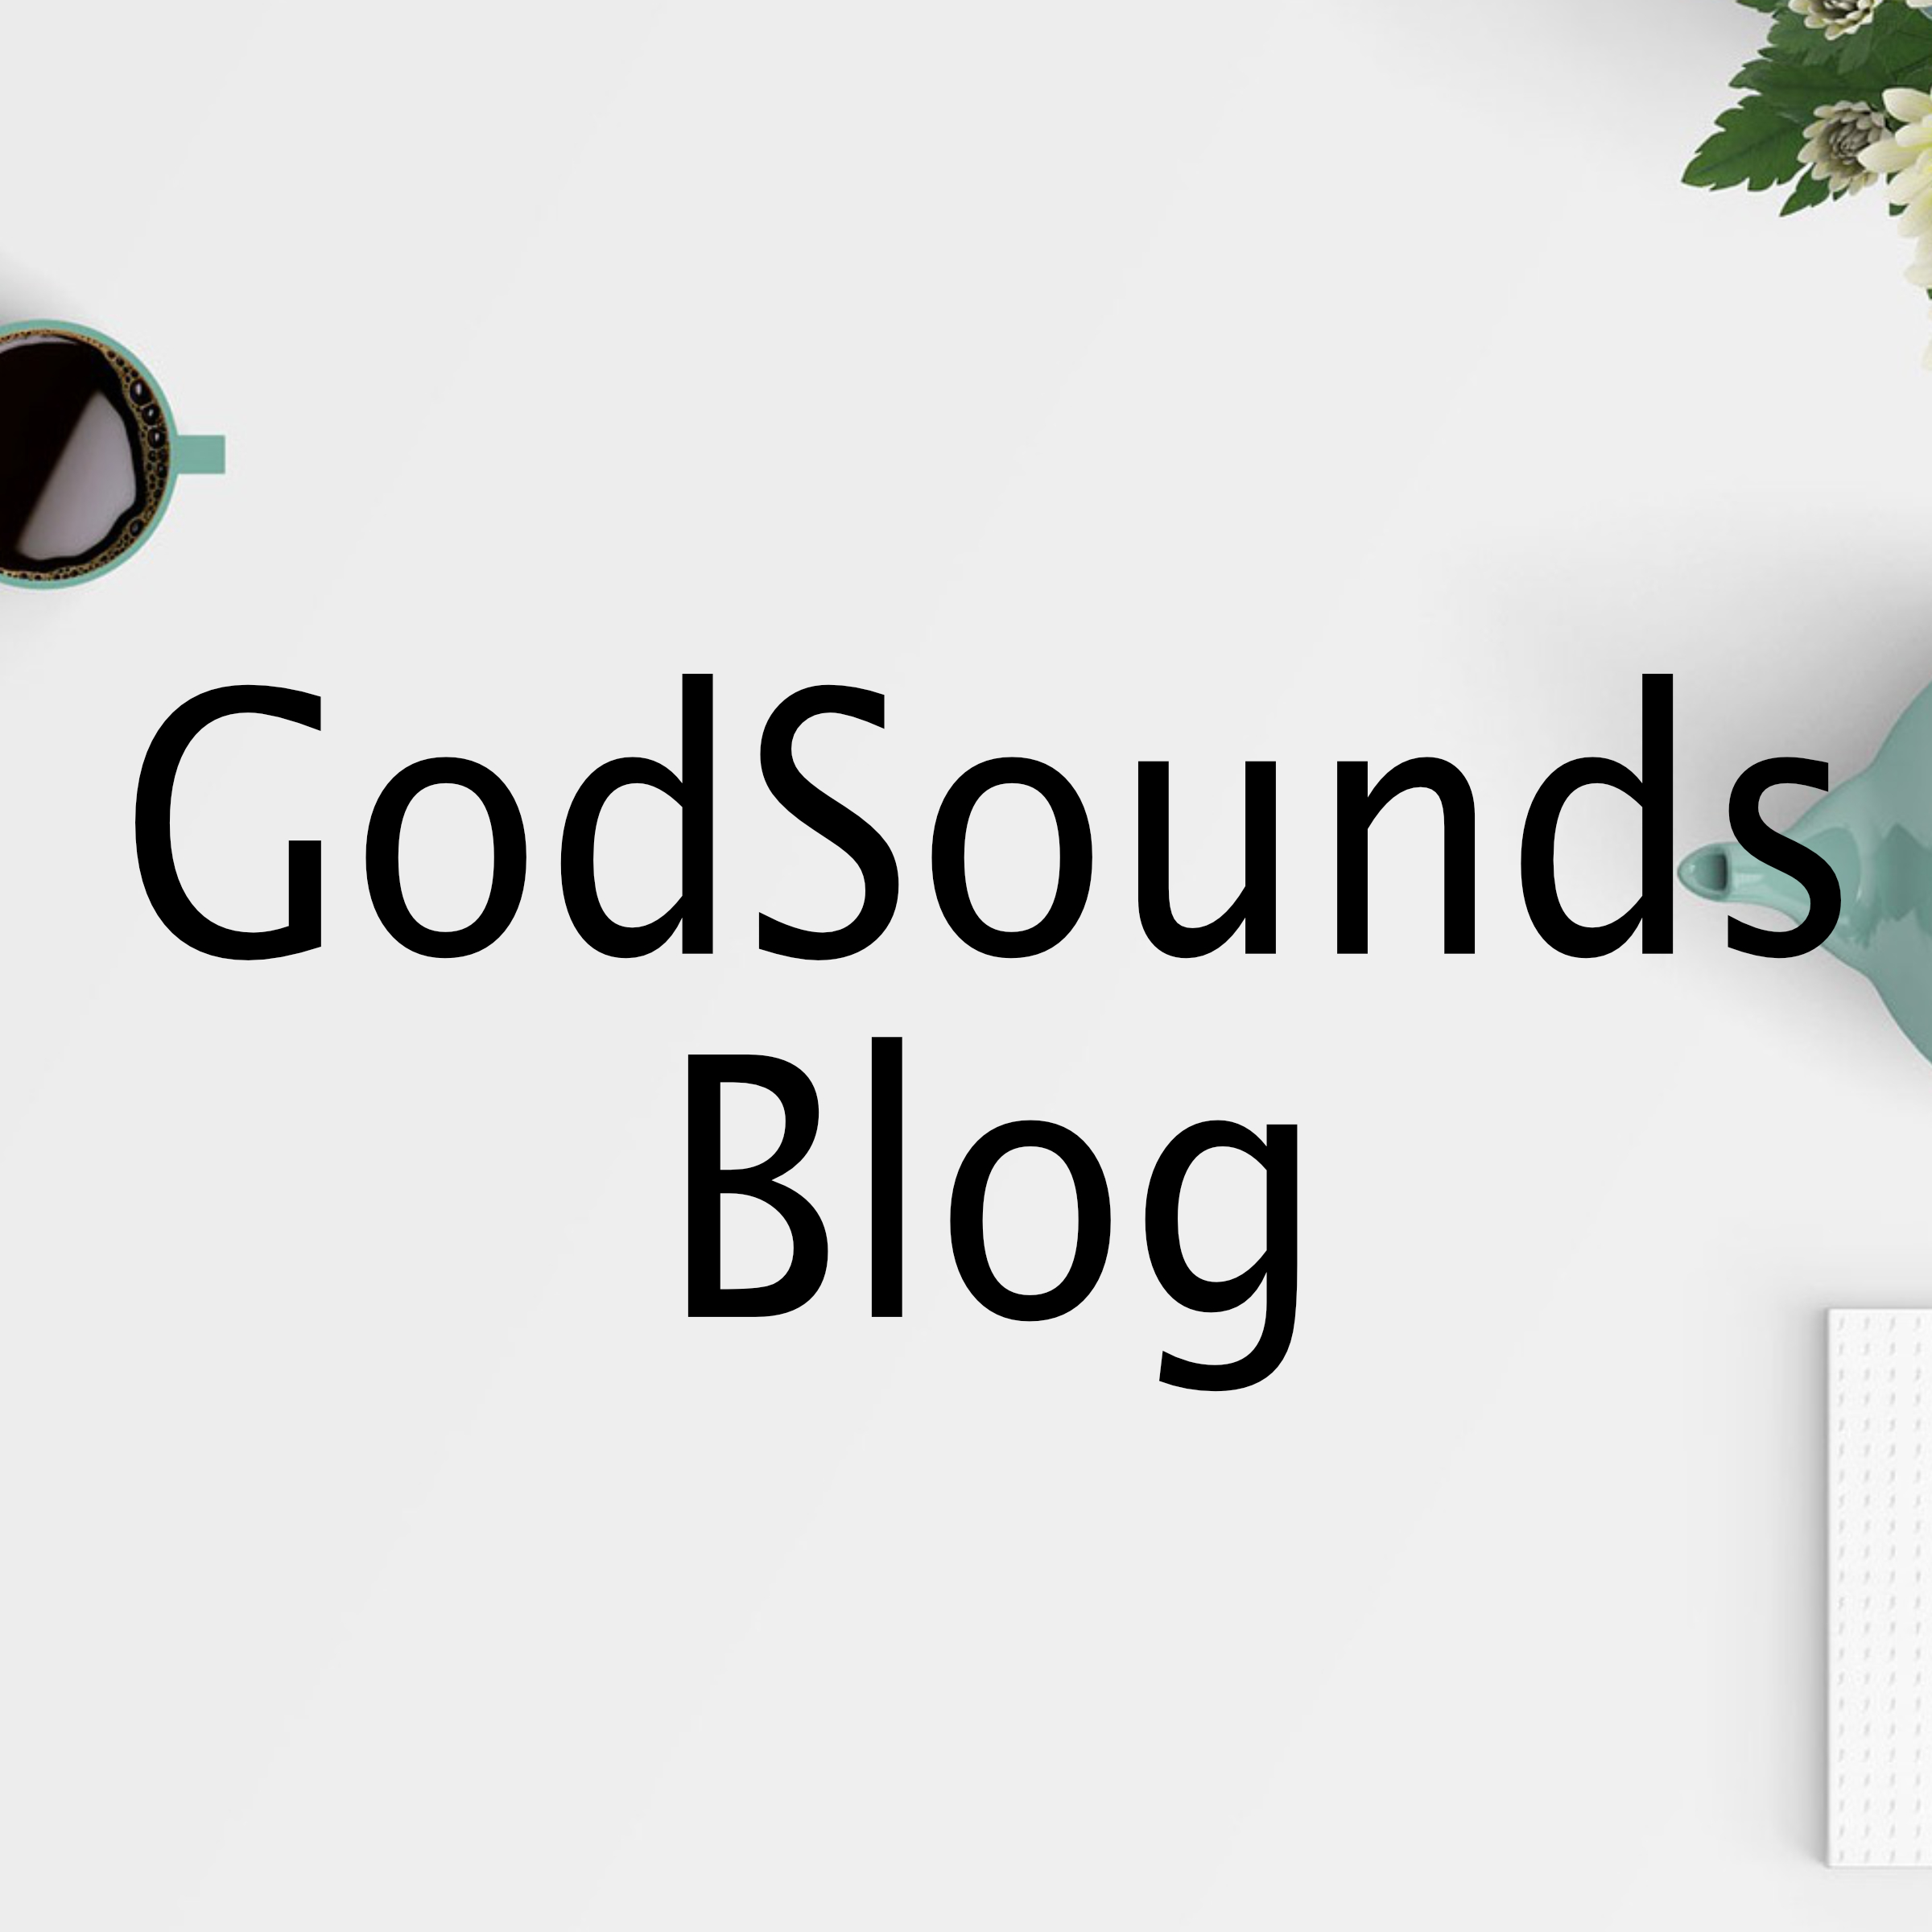 GodSounds Blog.jpg